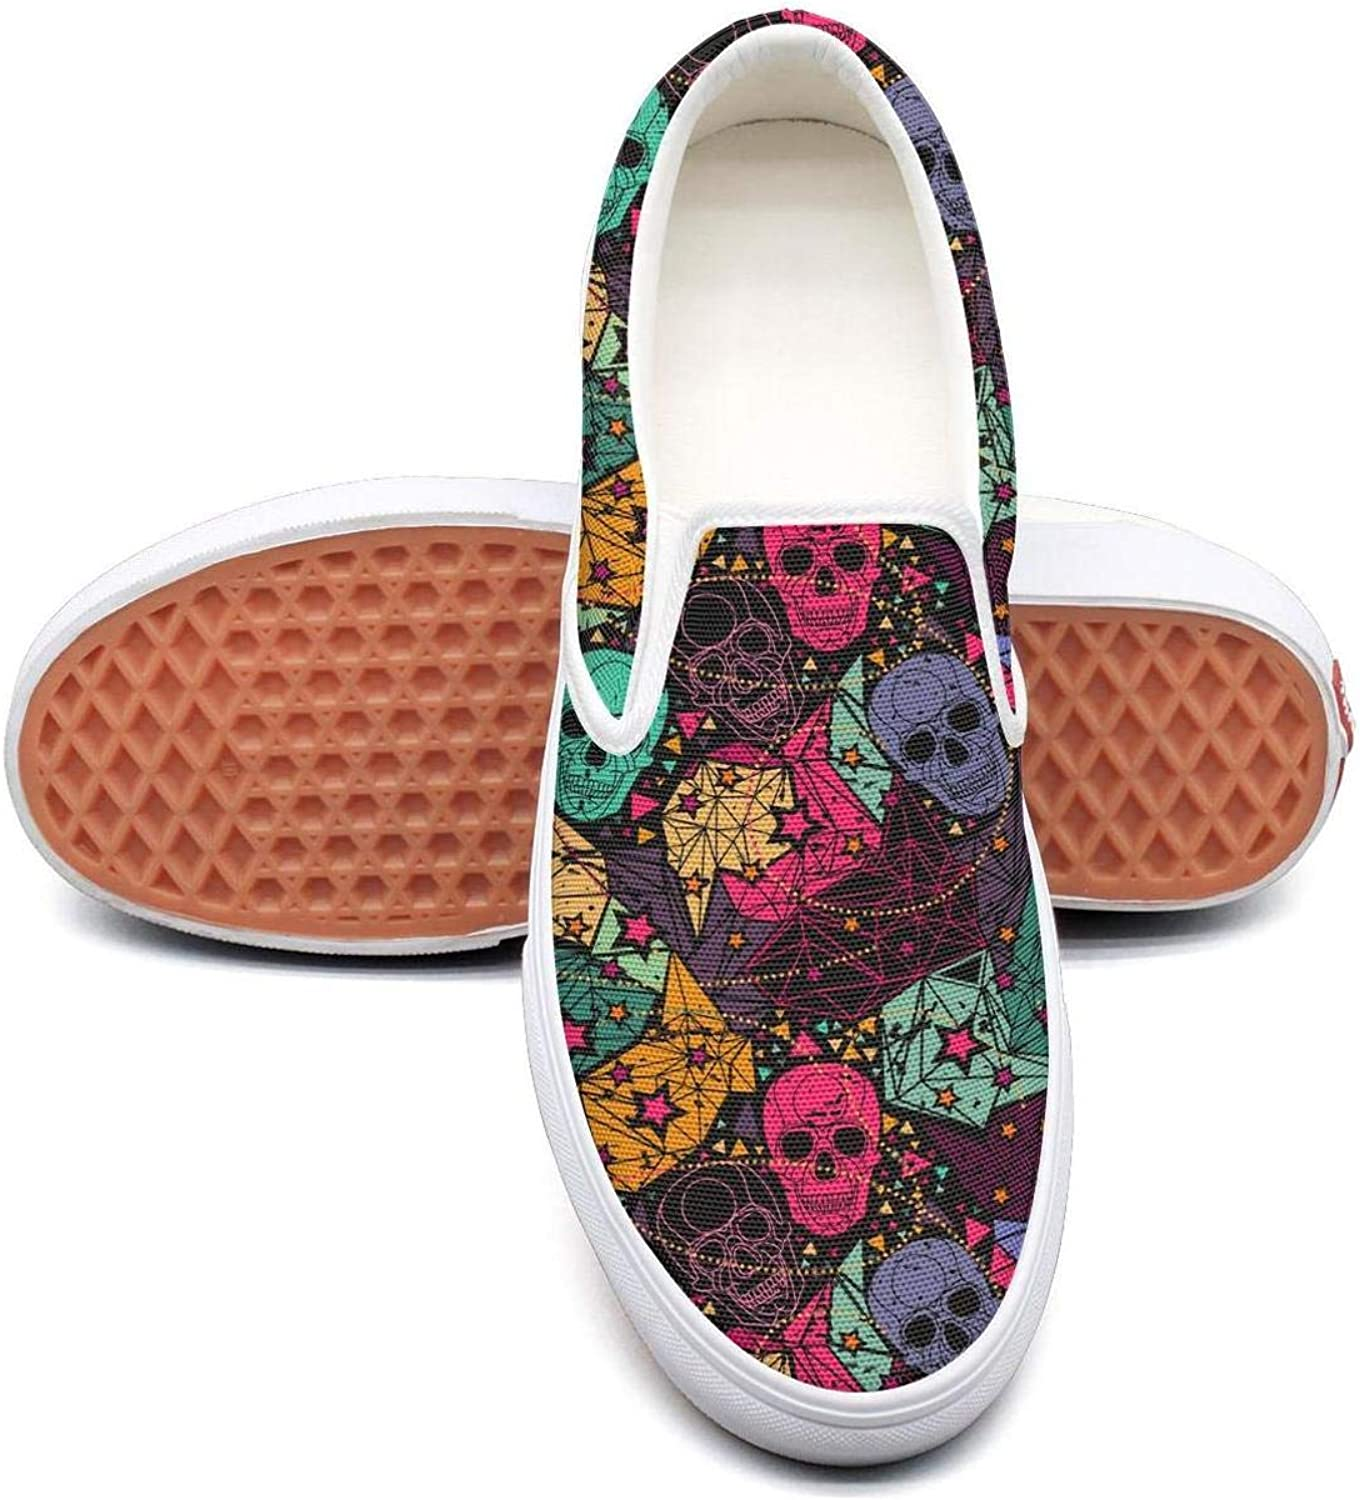 colorful Loungefly Skull Mask Slip On Rubber Sole Sneakers Canvas shoes for Women Fashion